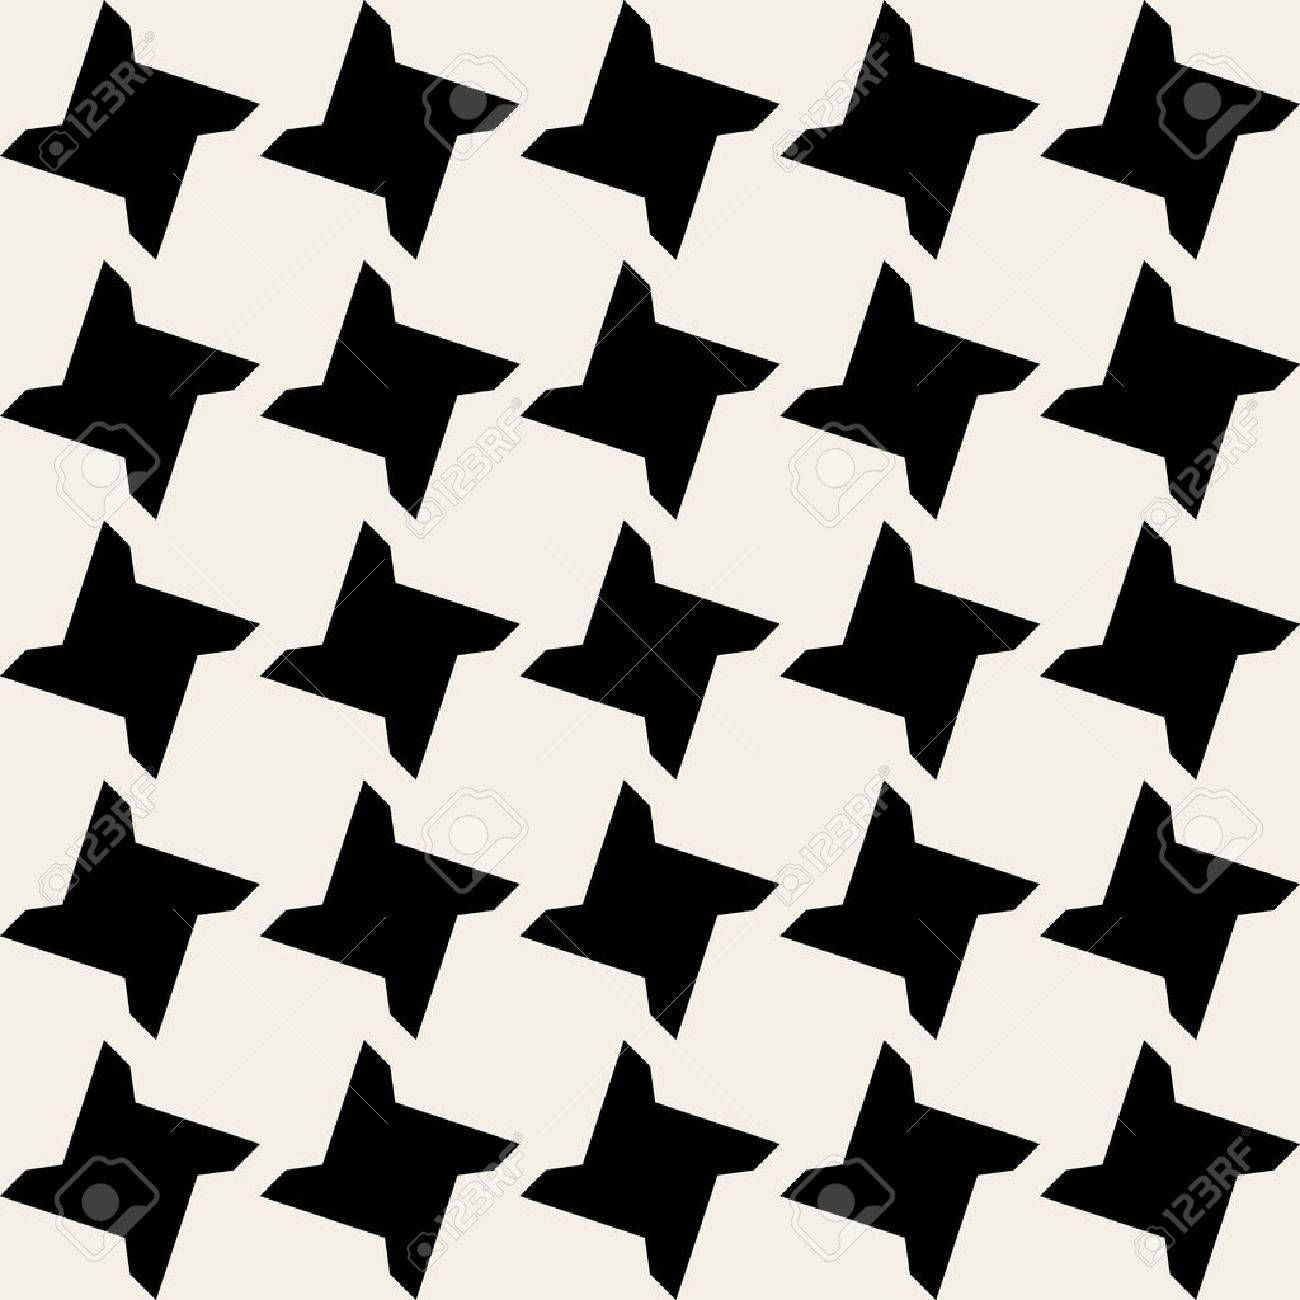 Seamless Black and White Geometric Star Tile Pattern Background - 46972413